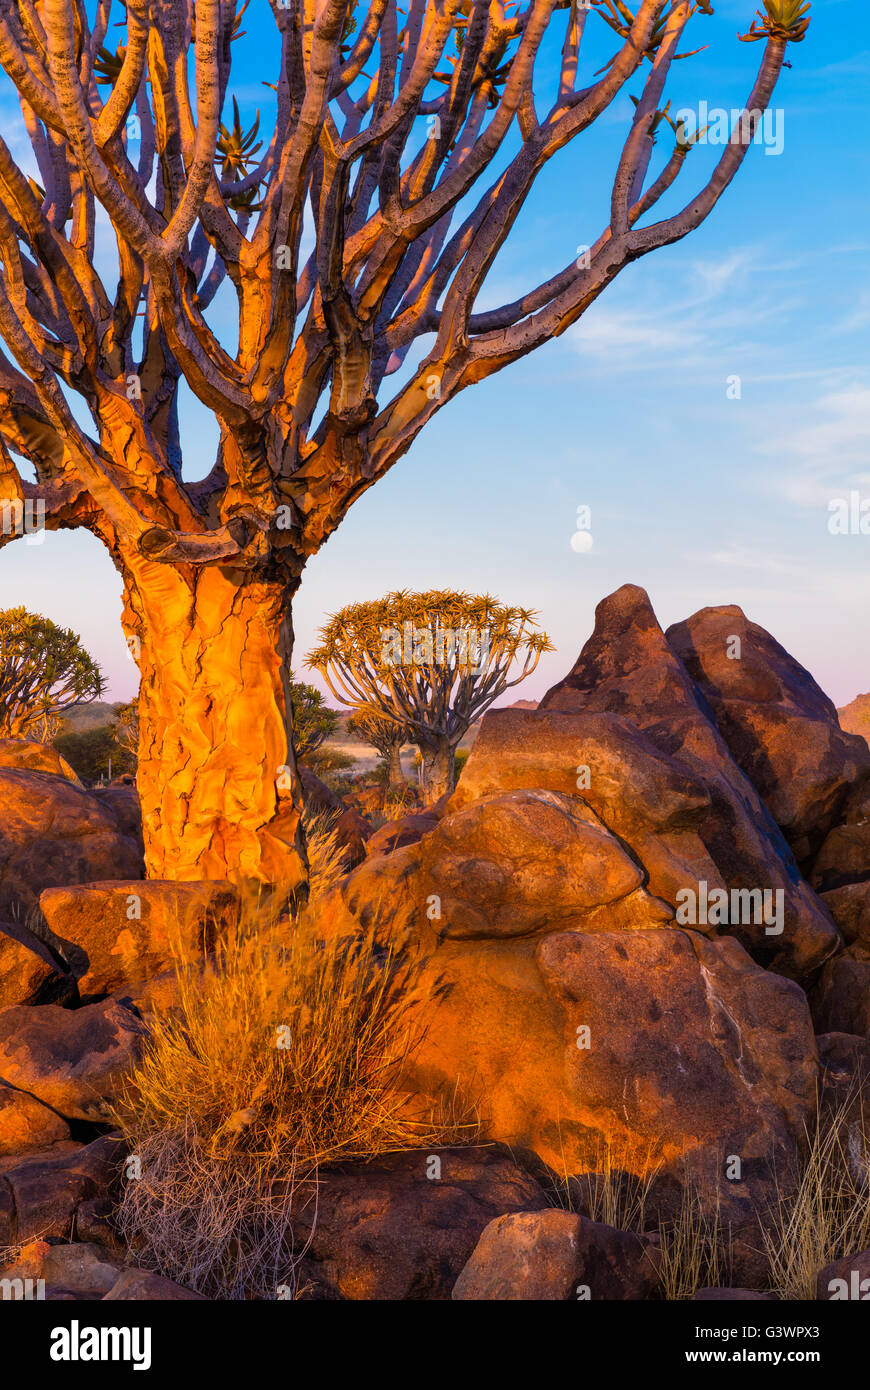 The Quiver Tree Forest (Kokerboom Woud in Afrikaans) is a forest and tourist attraction of southern Namibia. - Stock Image